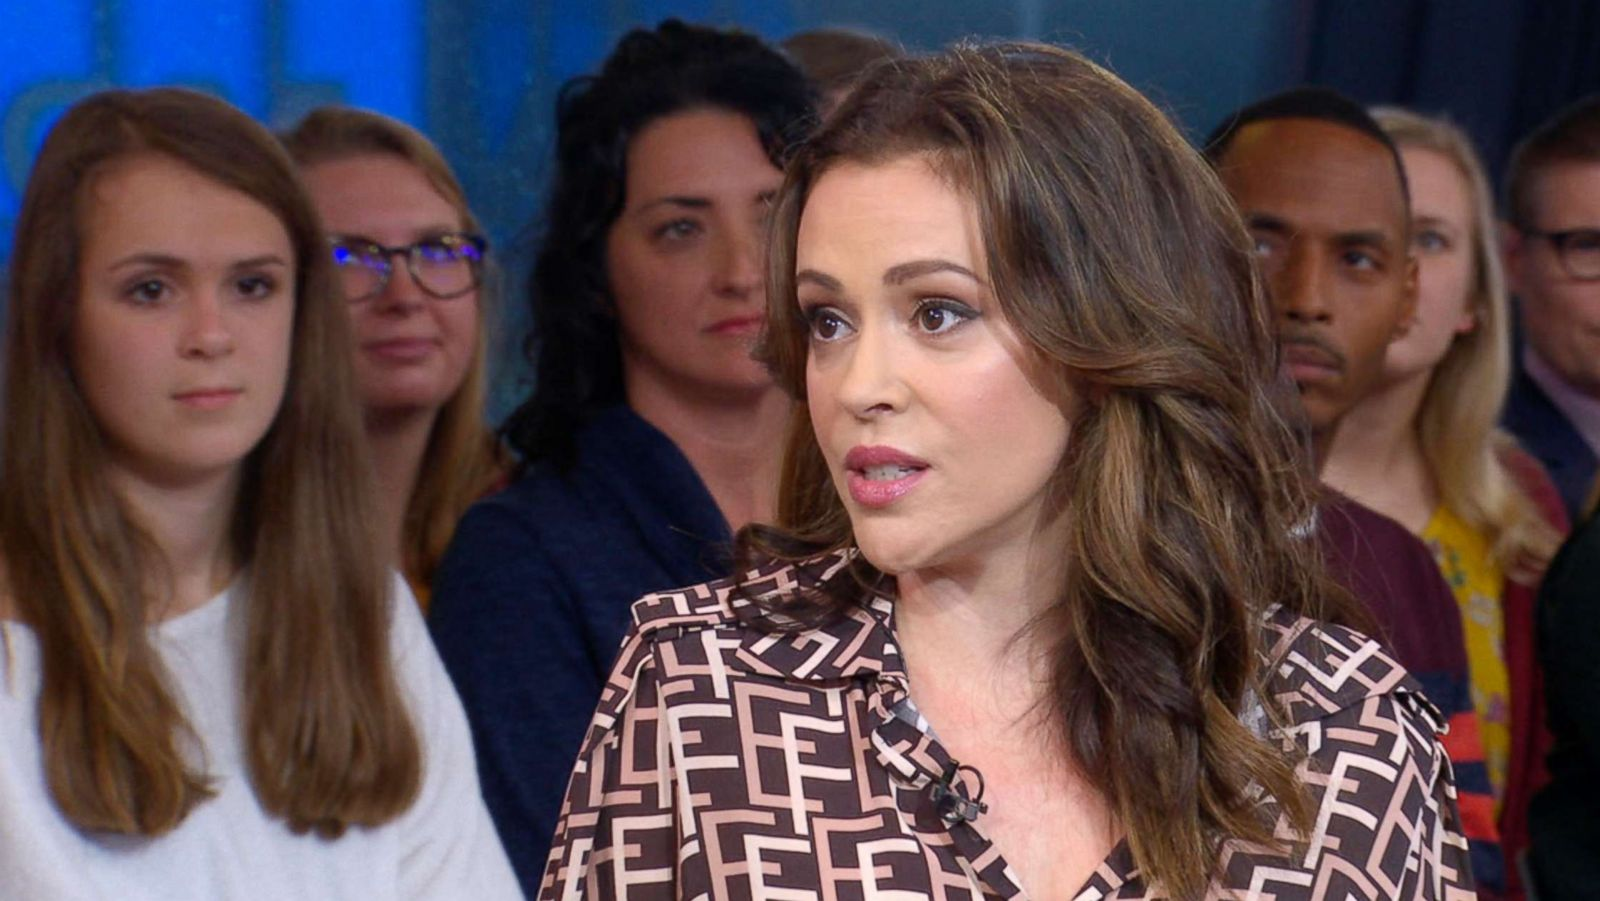 3a 3 20 Things You Probably Didn't Know About Alyssa Milano